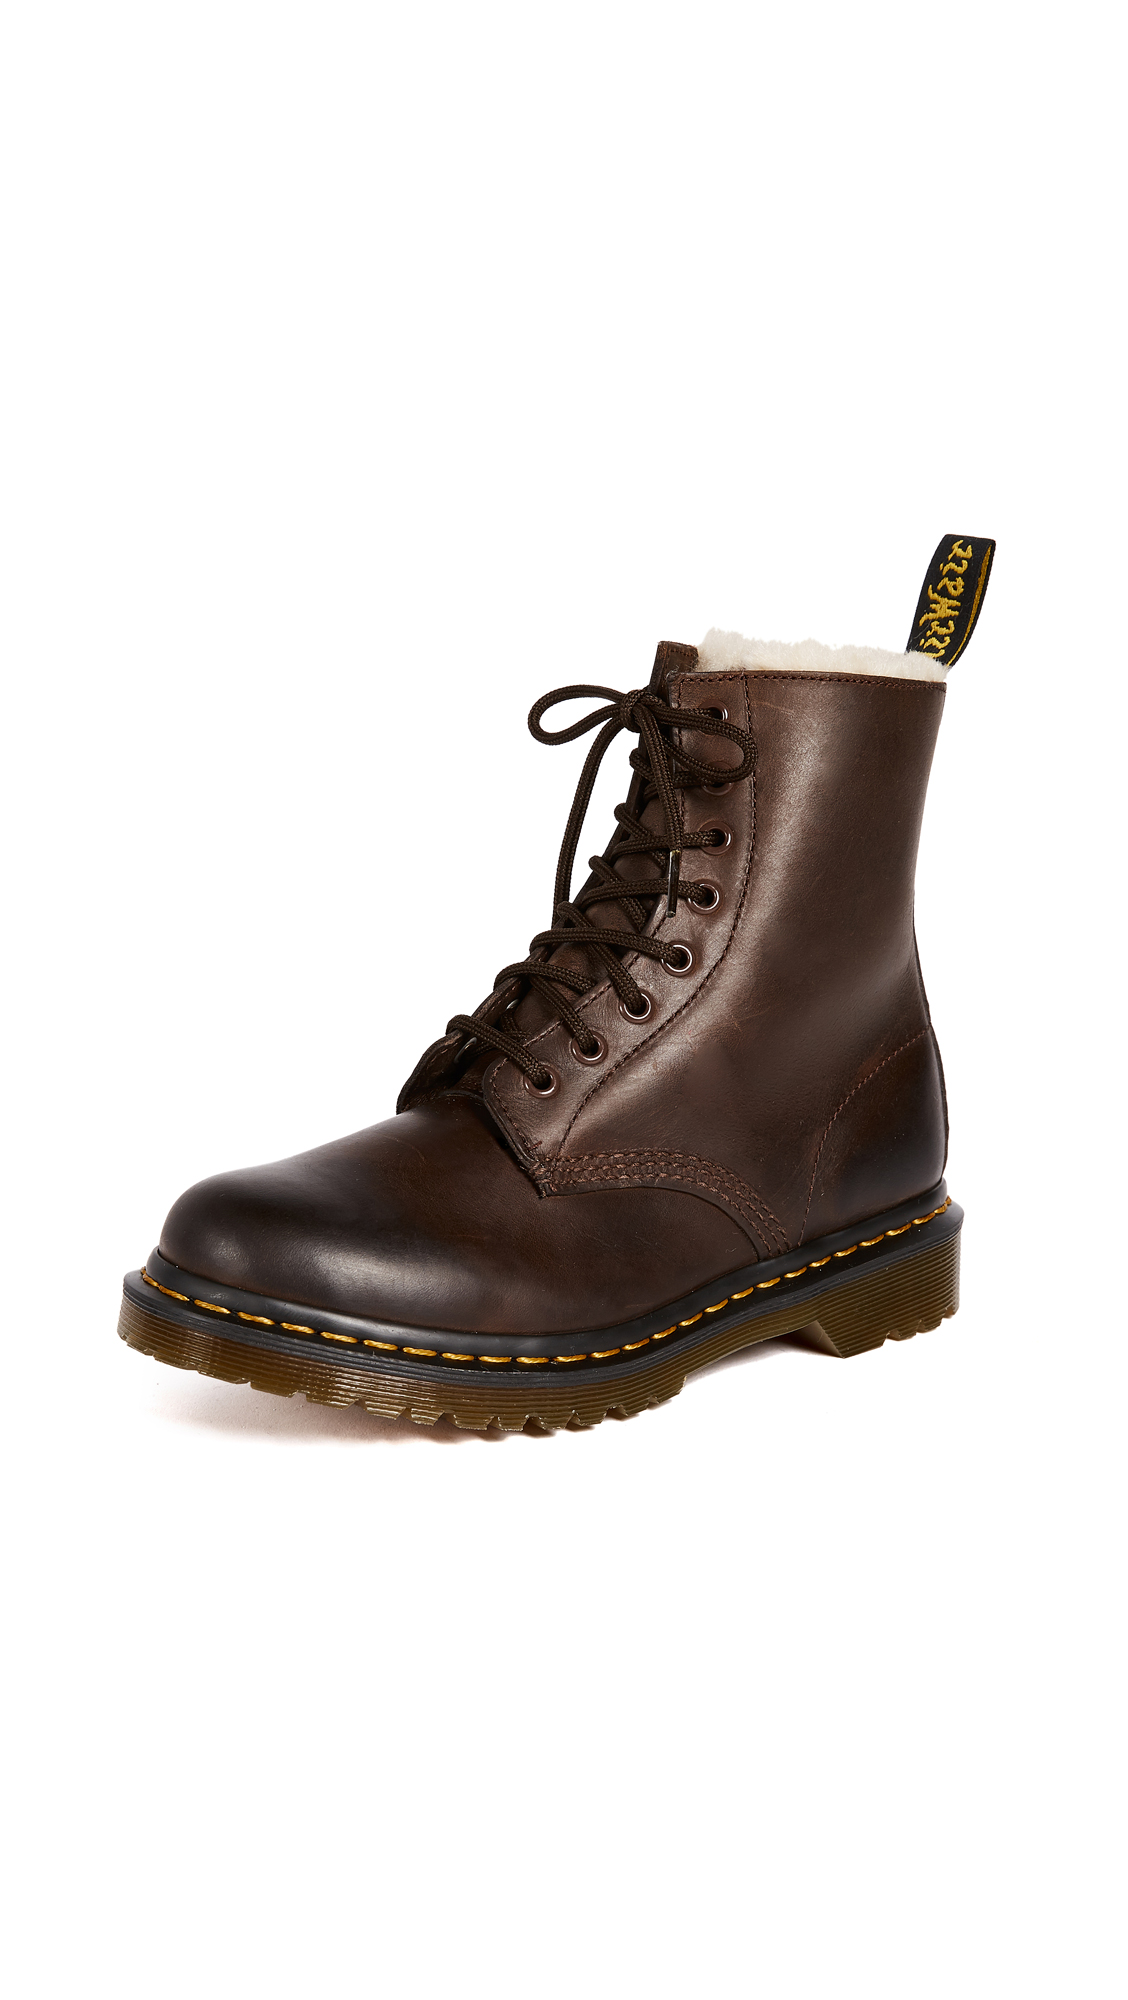 Dr. Martens 1460 Serena 8 Eye Sherpa Boots - Dark Brown